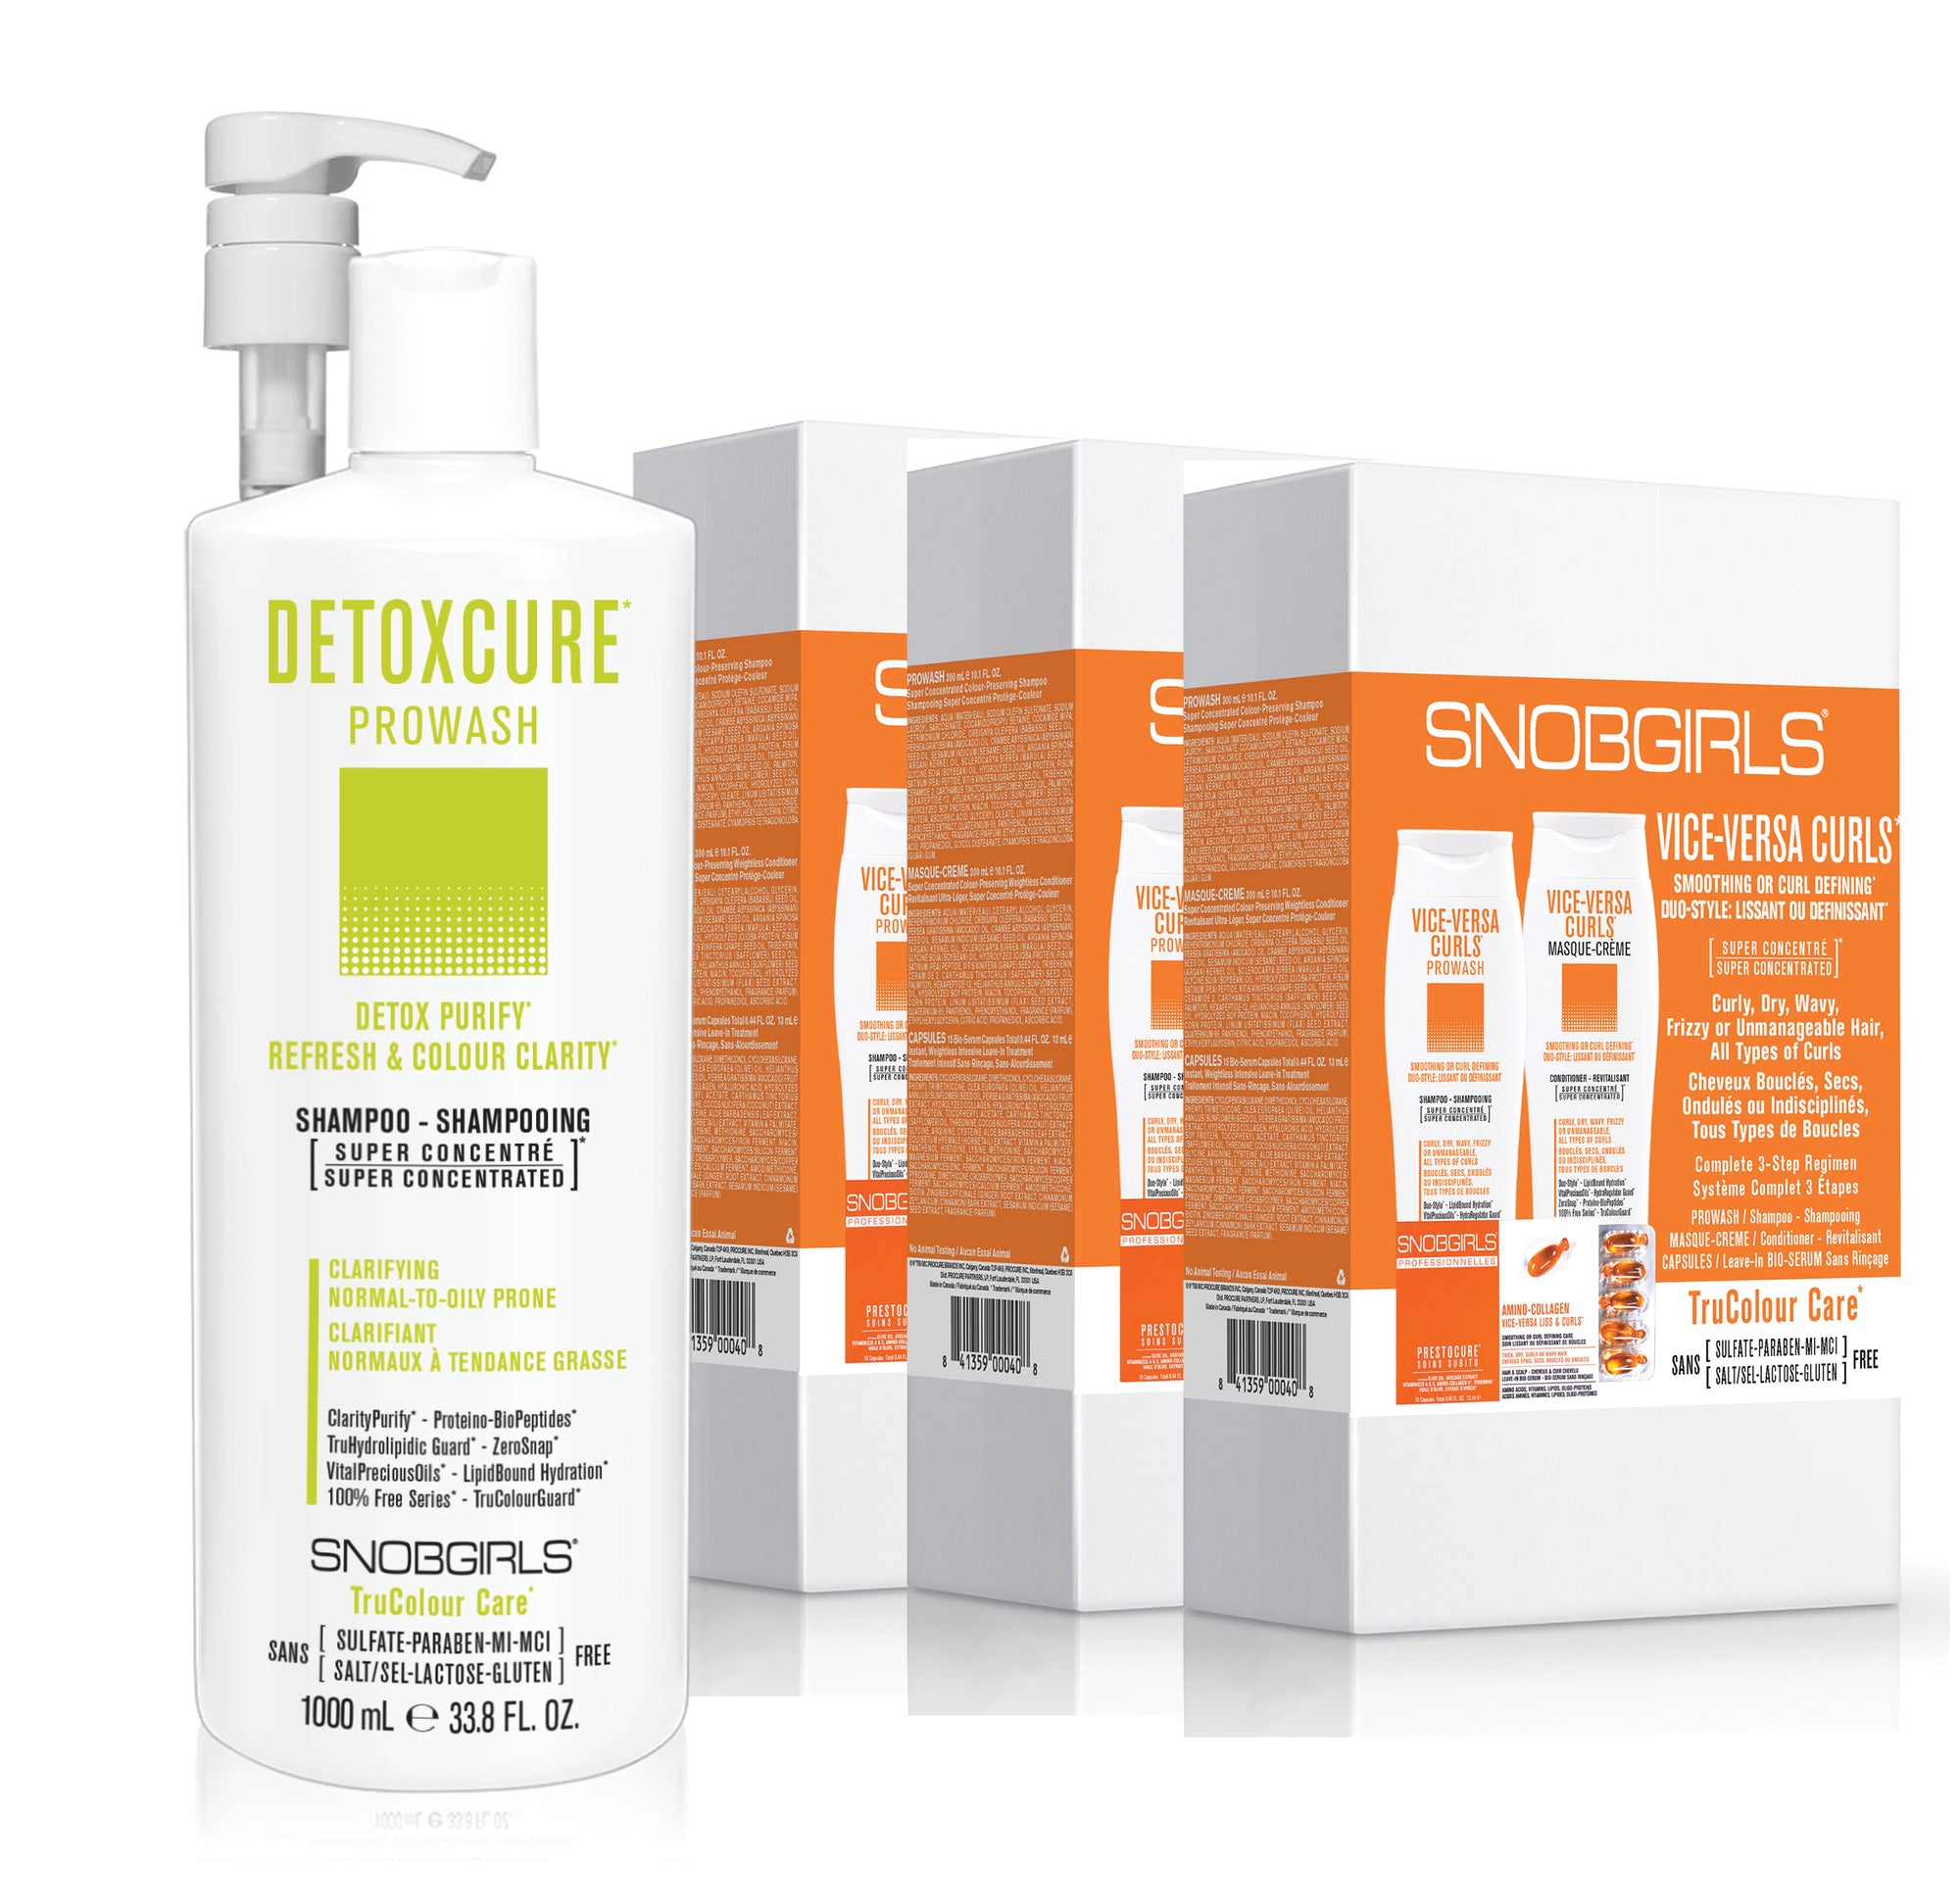 GIFT SETS- 3 X Trio VICE-VERSA CURLS Duo-Style: Smoothing or Curl Defining + Detoxcure Prowash Liter - SNOBGIRLS.com